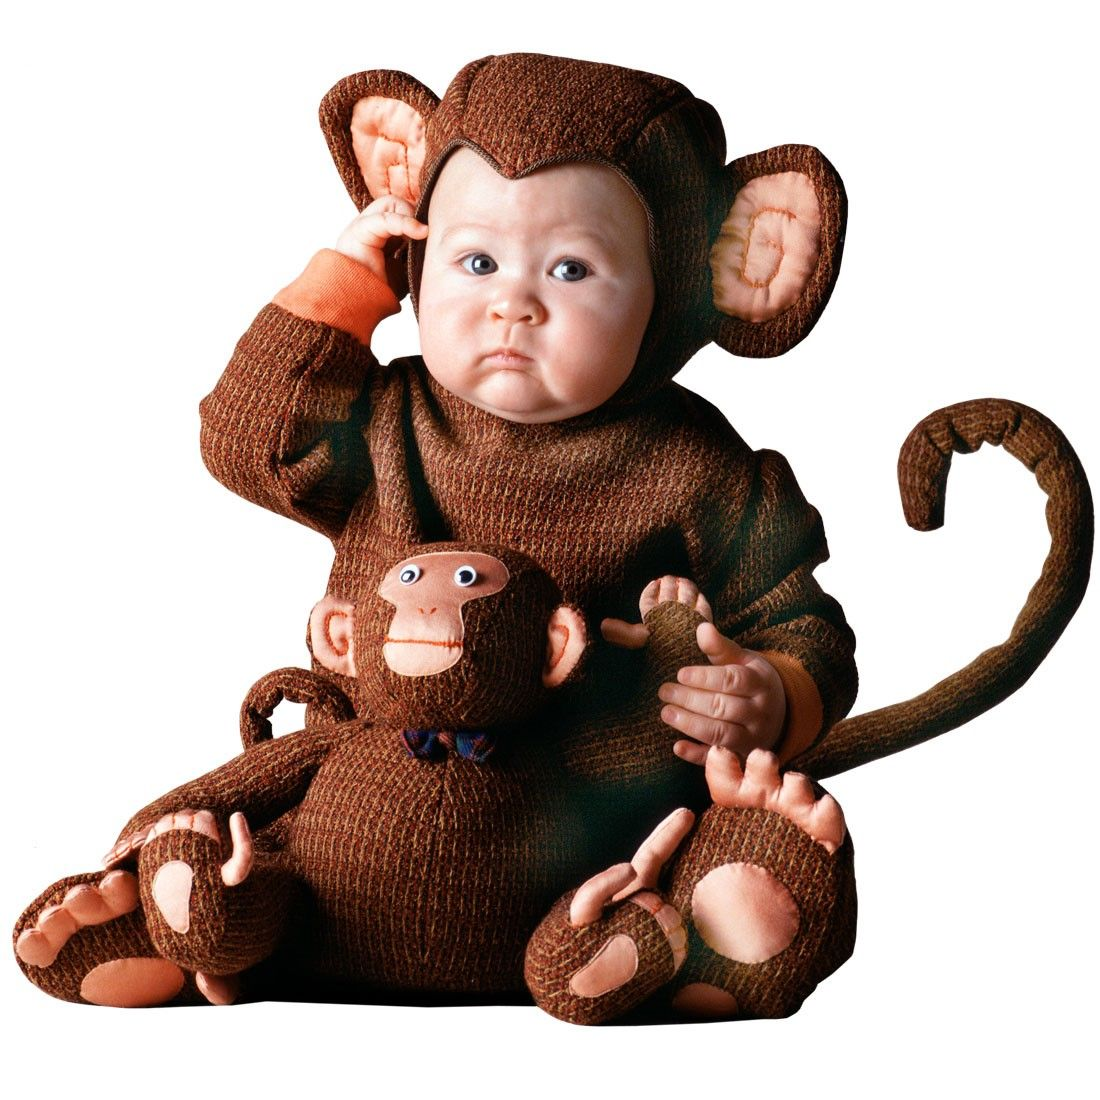 Kids Halloween Monkey costume //shopstyle.iu2026  sc 1 st  Pinterest & Kids Halloween Monkey costume http://shopstyle.iu2026 | Halloween ...